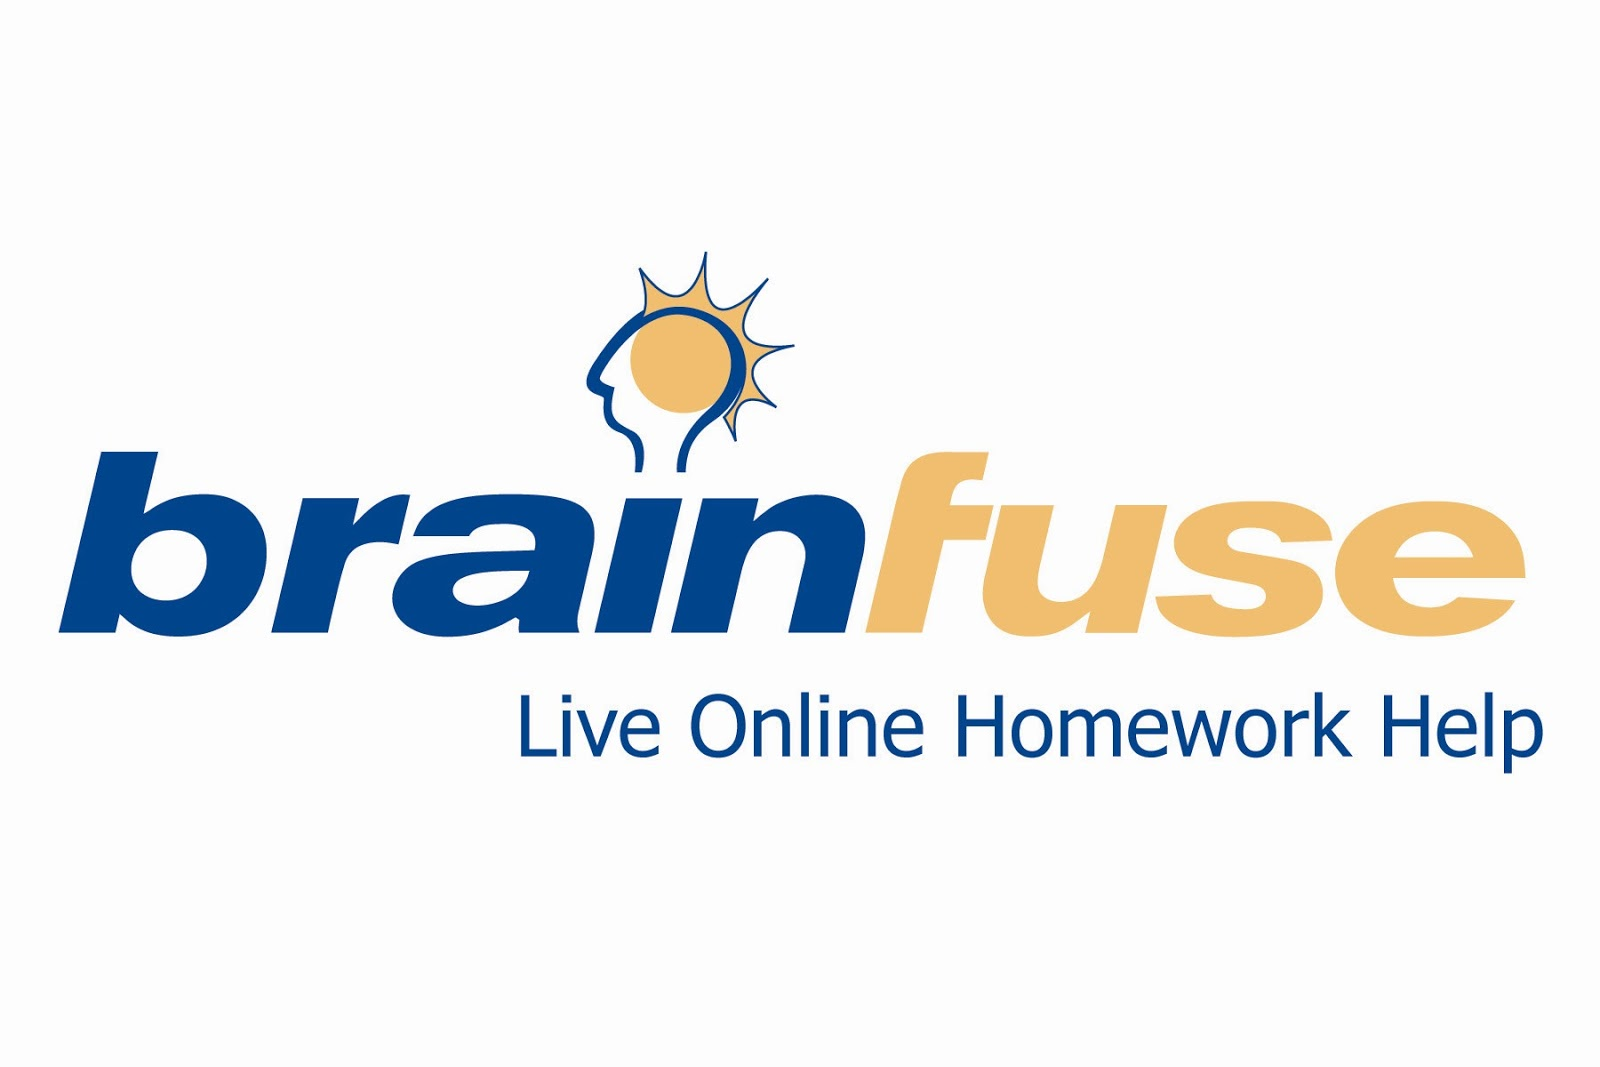 tutor help online free homework Tutoring & homework help for math, chemistry, & physics homework & exam help by email, skype, whatsapp i can help with your online class free study guides, cheat.